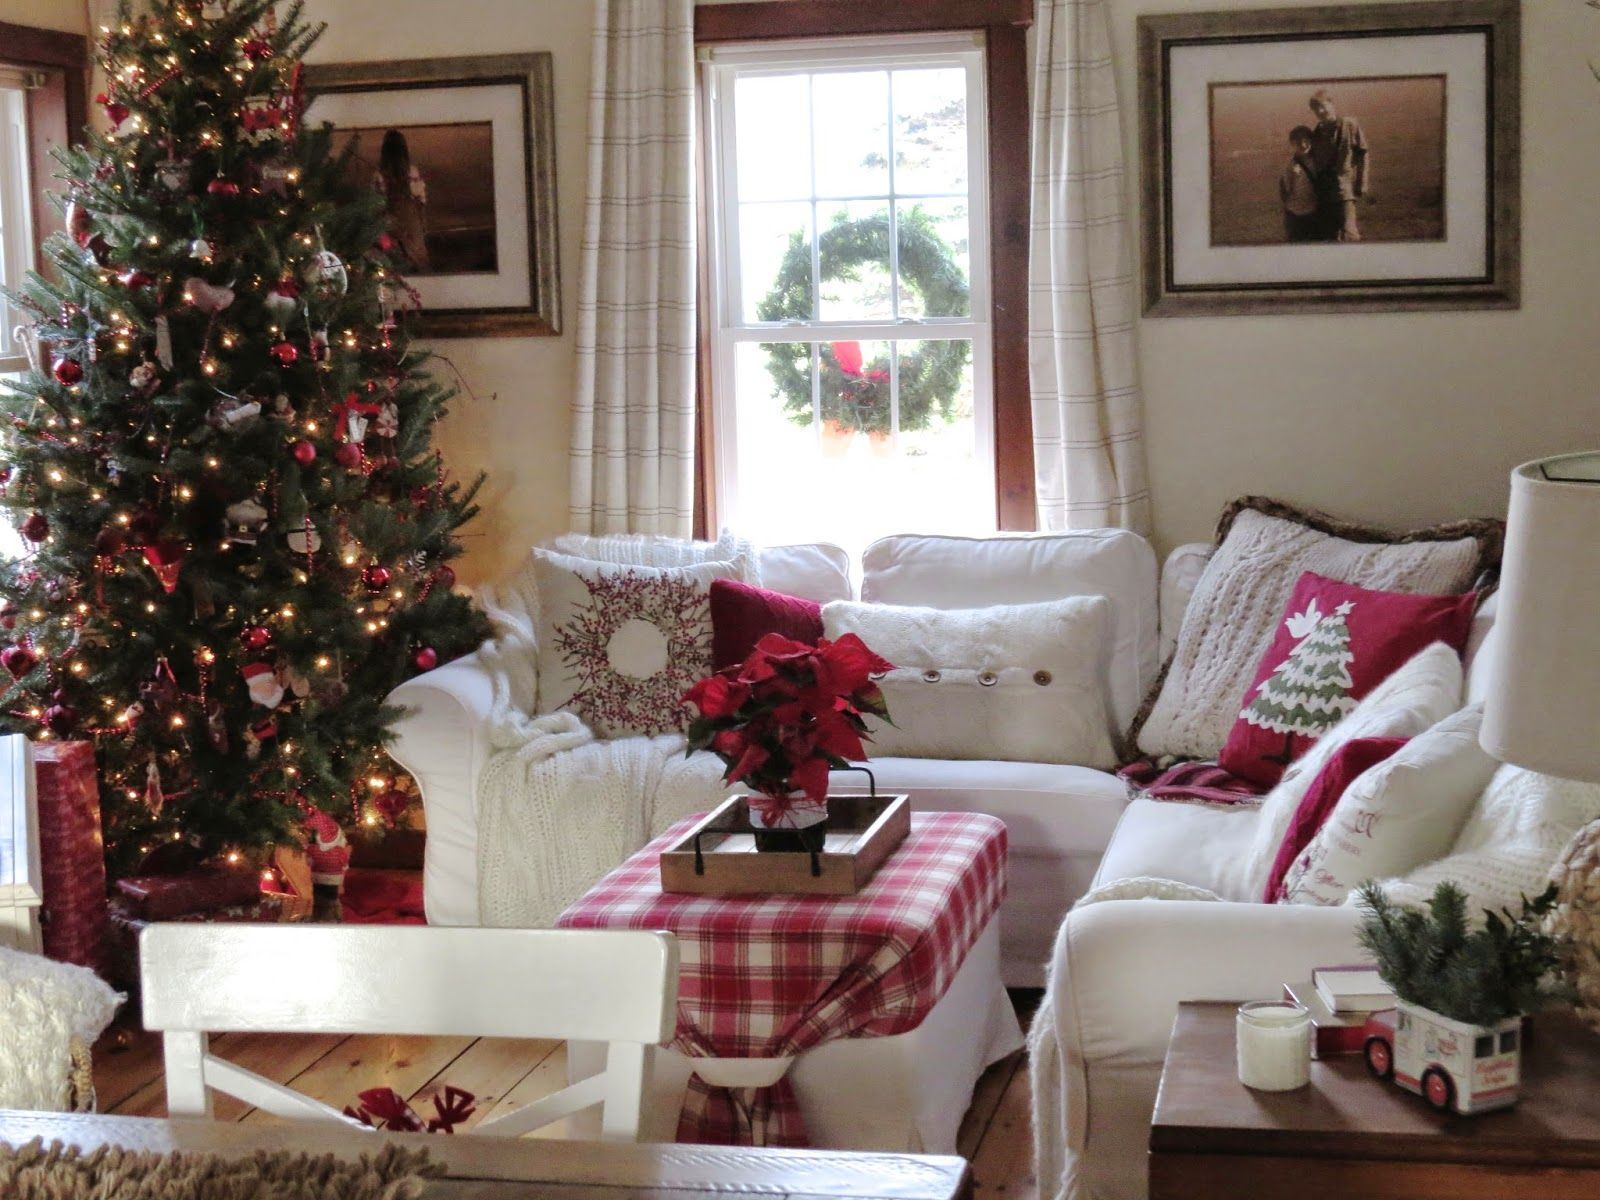 Christmas Home Tour 2014 | Christmas interiors, Christmas ...